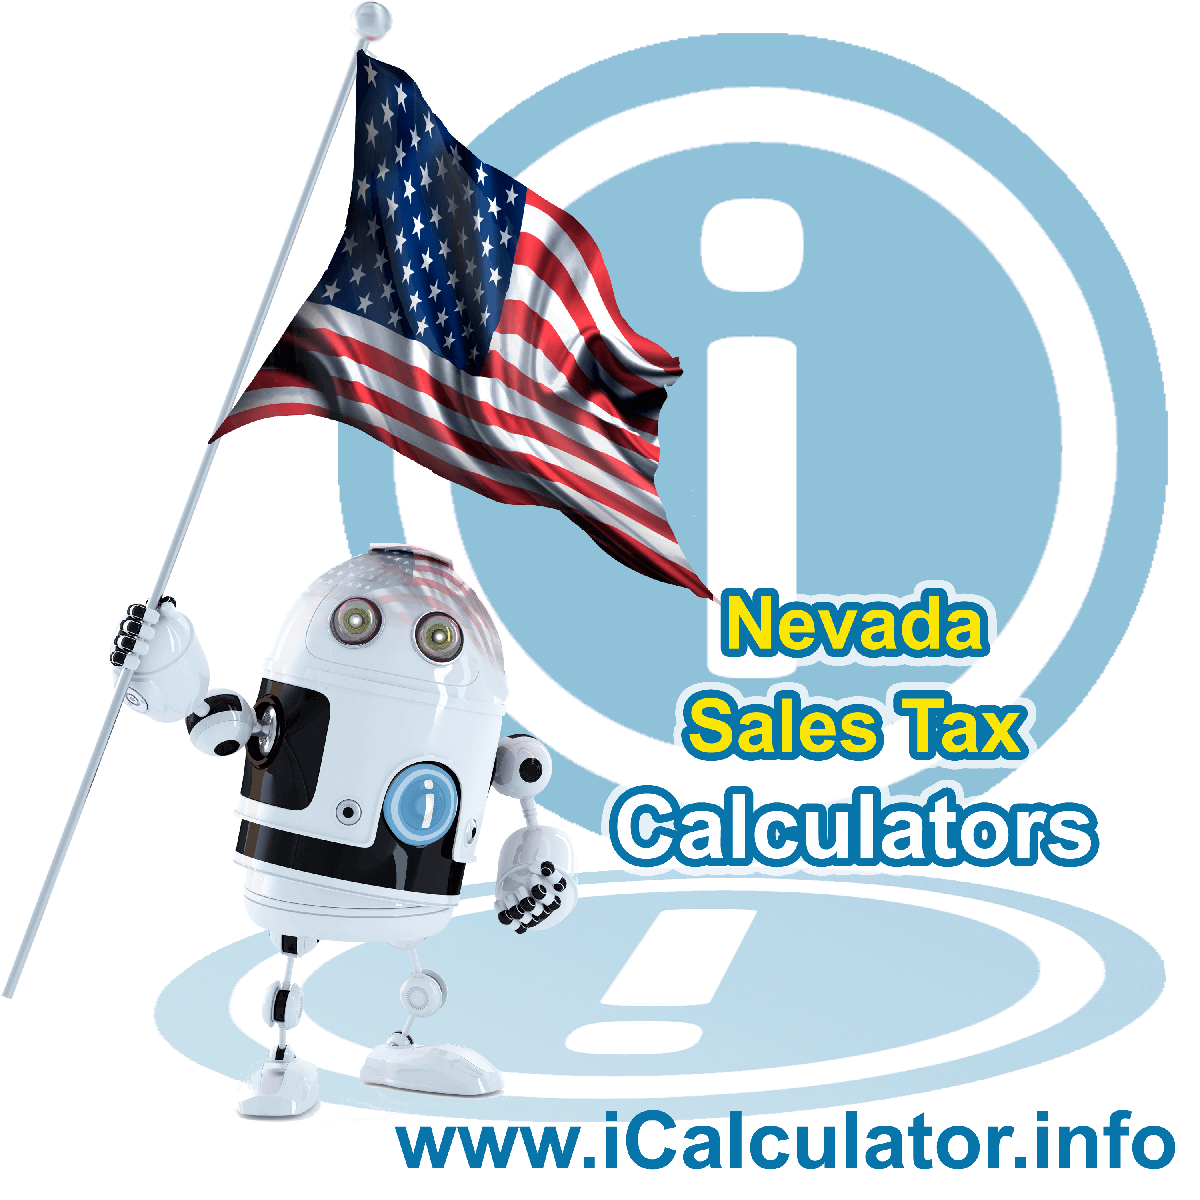 Nevada Sales Tax Comparison Calculator: This image illustrates a calculator robot comparing sales tax in Nevada manually using the Nevada Sales Tax Formula. You can use this information to compare Sales Tax manually or use the Nevada Sales Tax Comparison Calculator to calculate and compare Nevada sales tax online.